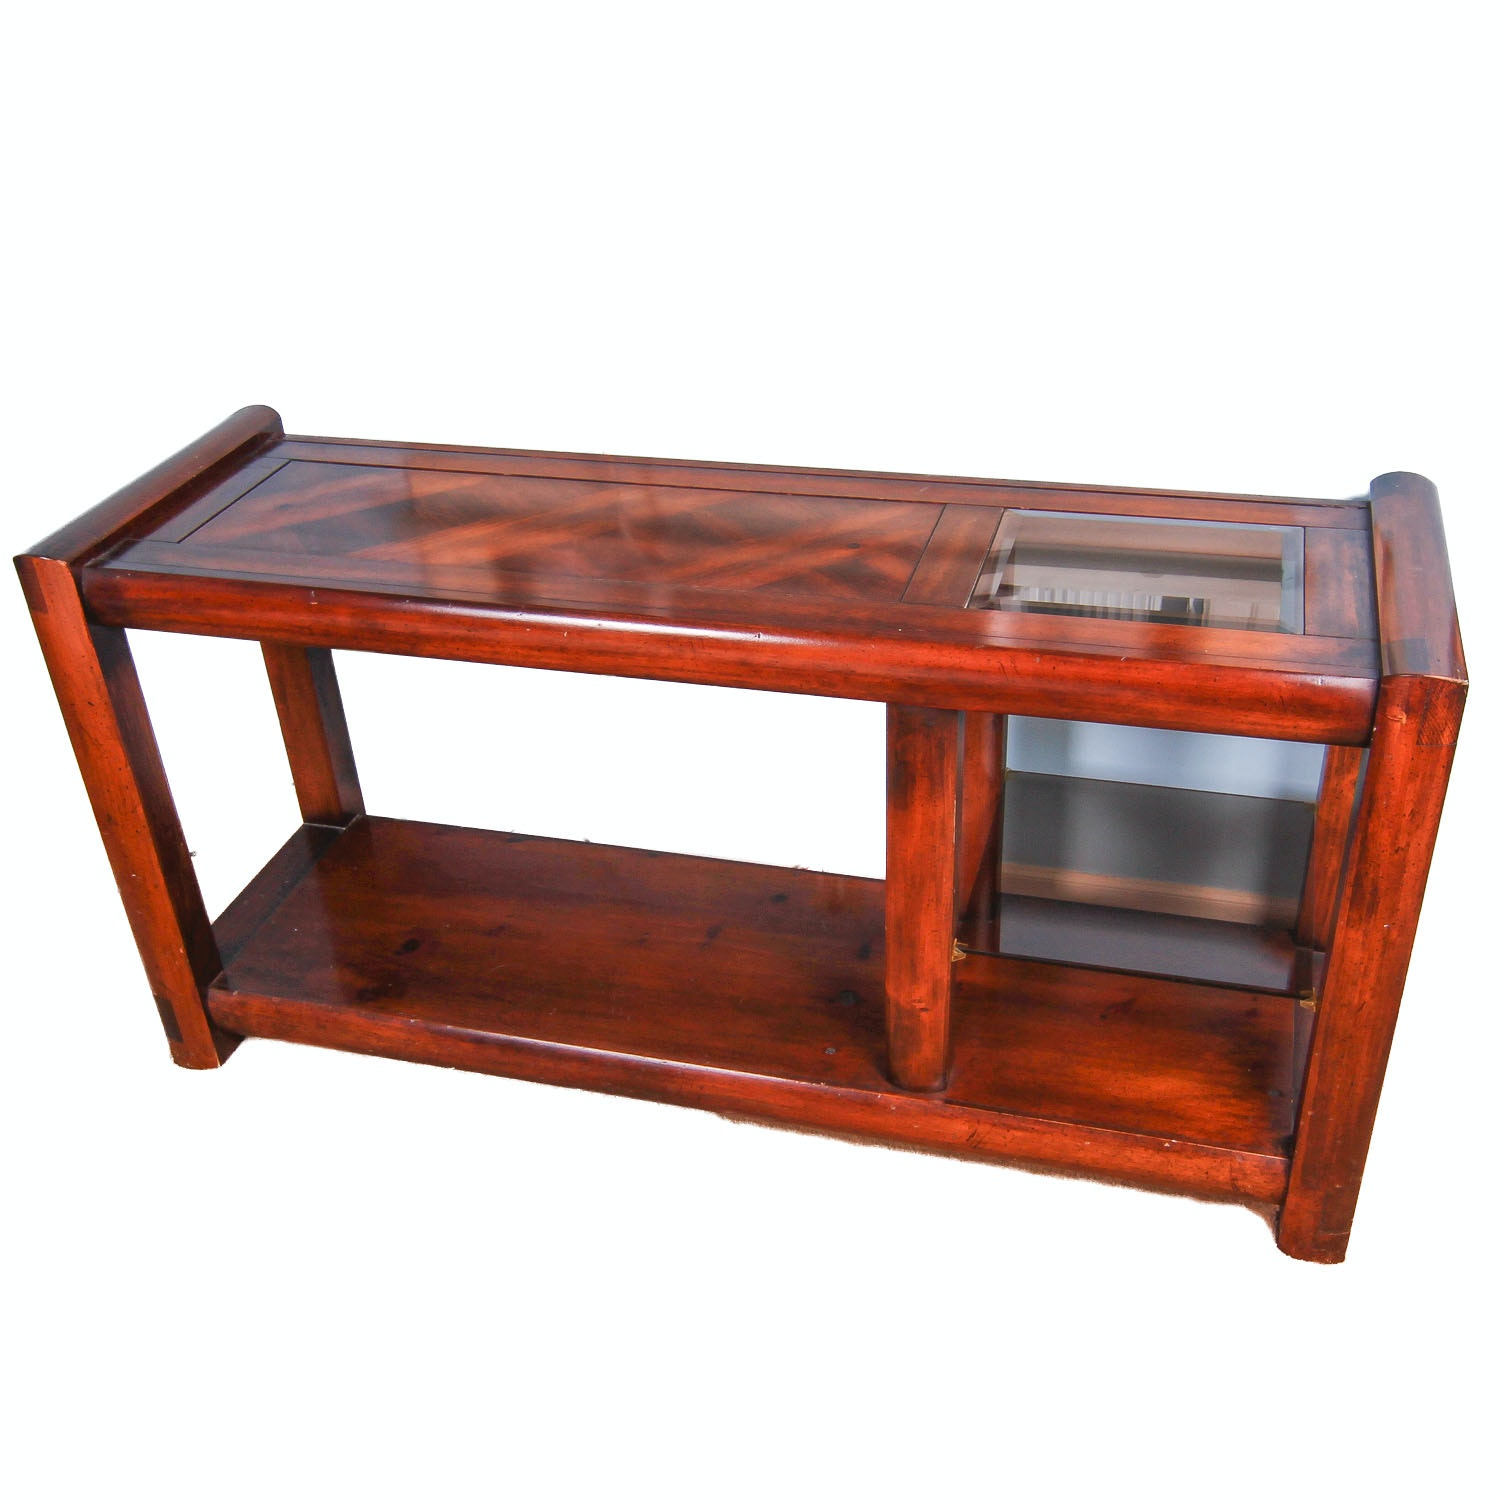 Console Table with Parquetry and Glass Inlays